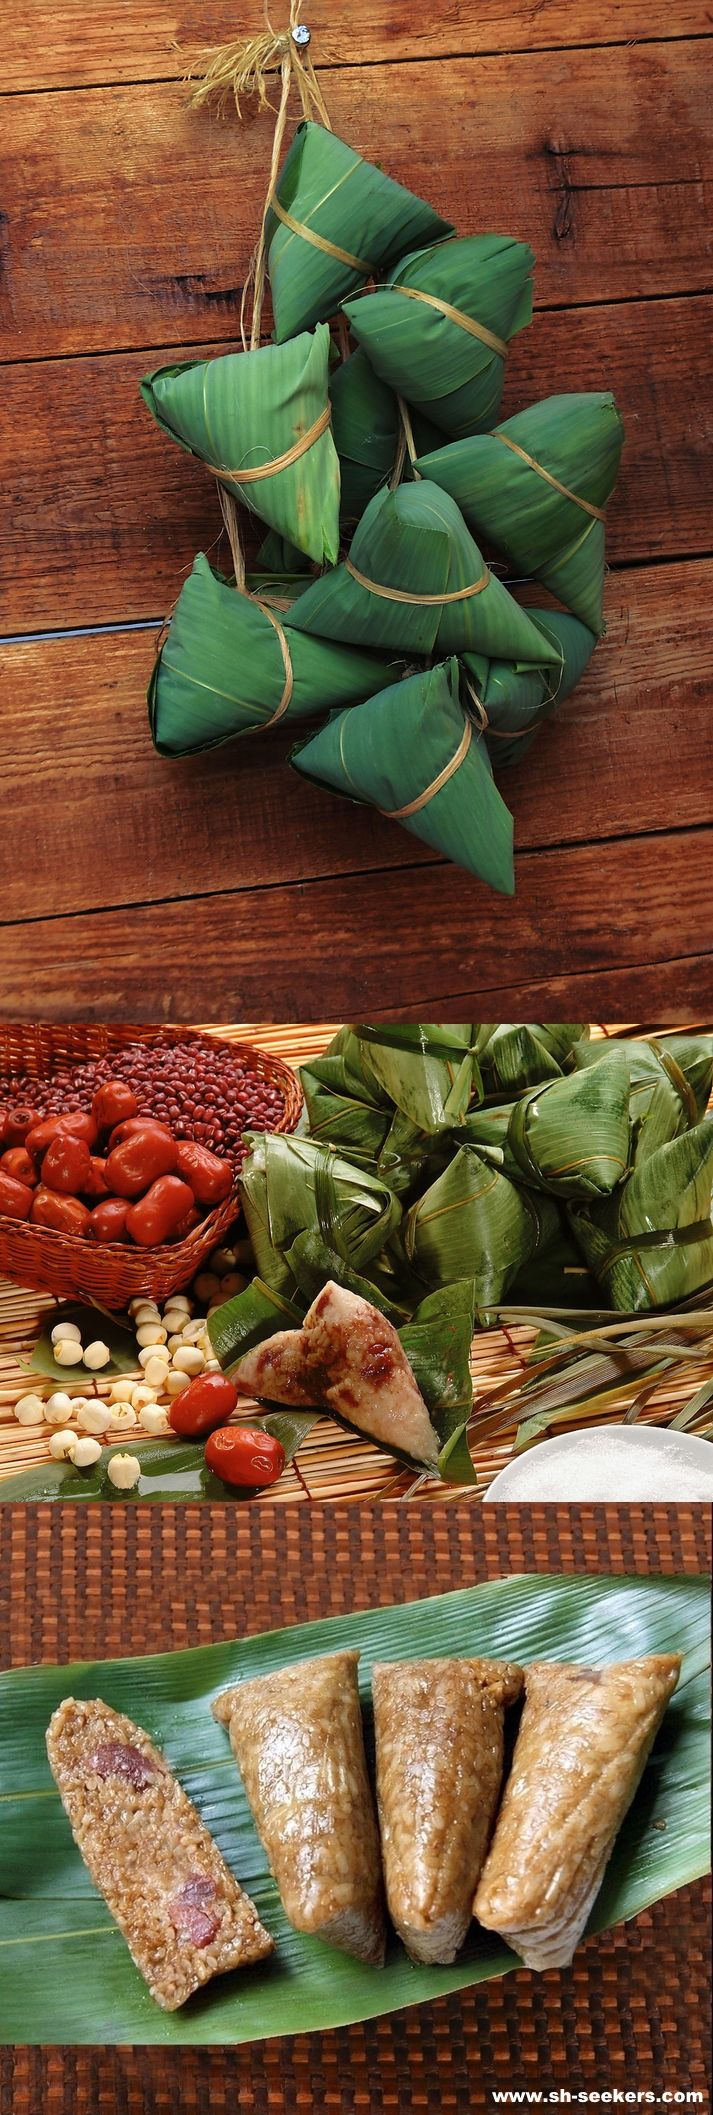 #chinesefood, A very popular dish during the Dragon Boat festival is tzung tzu. This tasty dish consists of rice dumplings with meat, peanut, egg yolk, or other fillings wrapped in bamboo leaves. The tradition of tzung tzu is meant to remind us of the village fishermen scattering rice across the water of the Mi Low river in order to appease the river dragons so that they would not devour Chu Yuan.